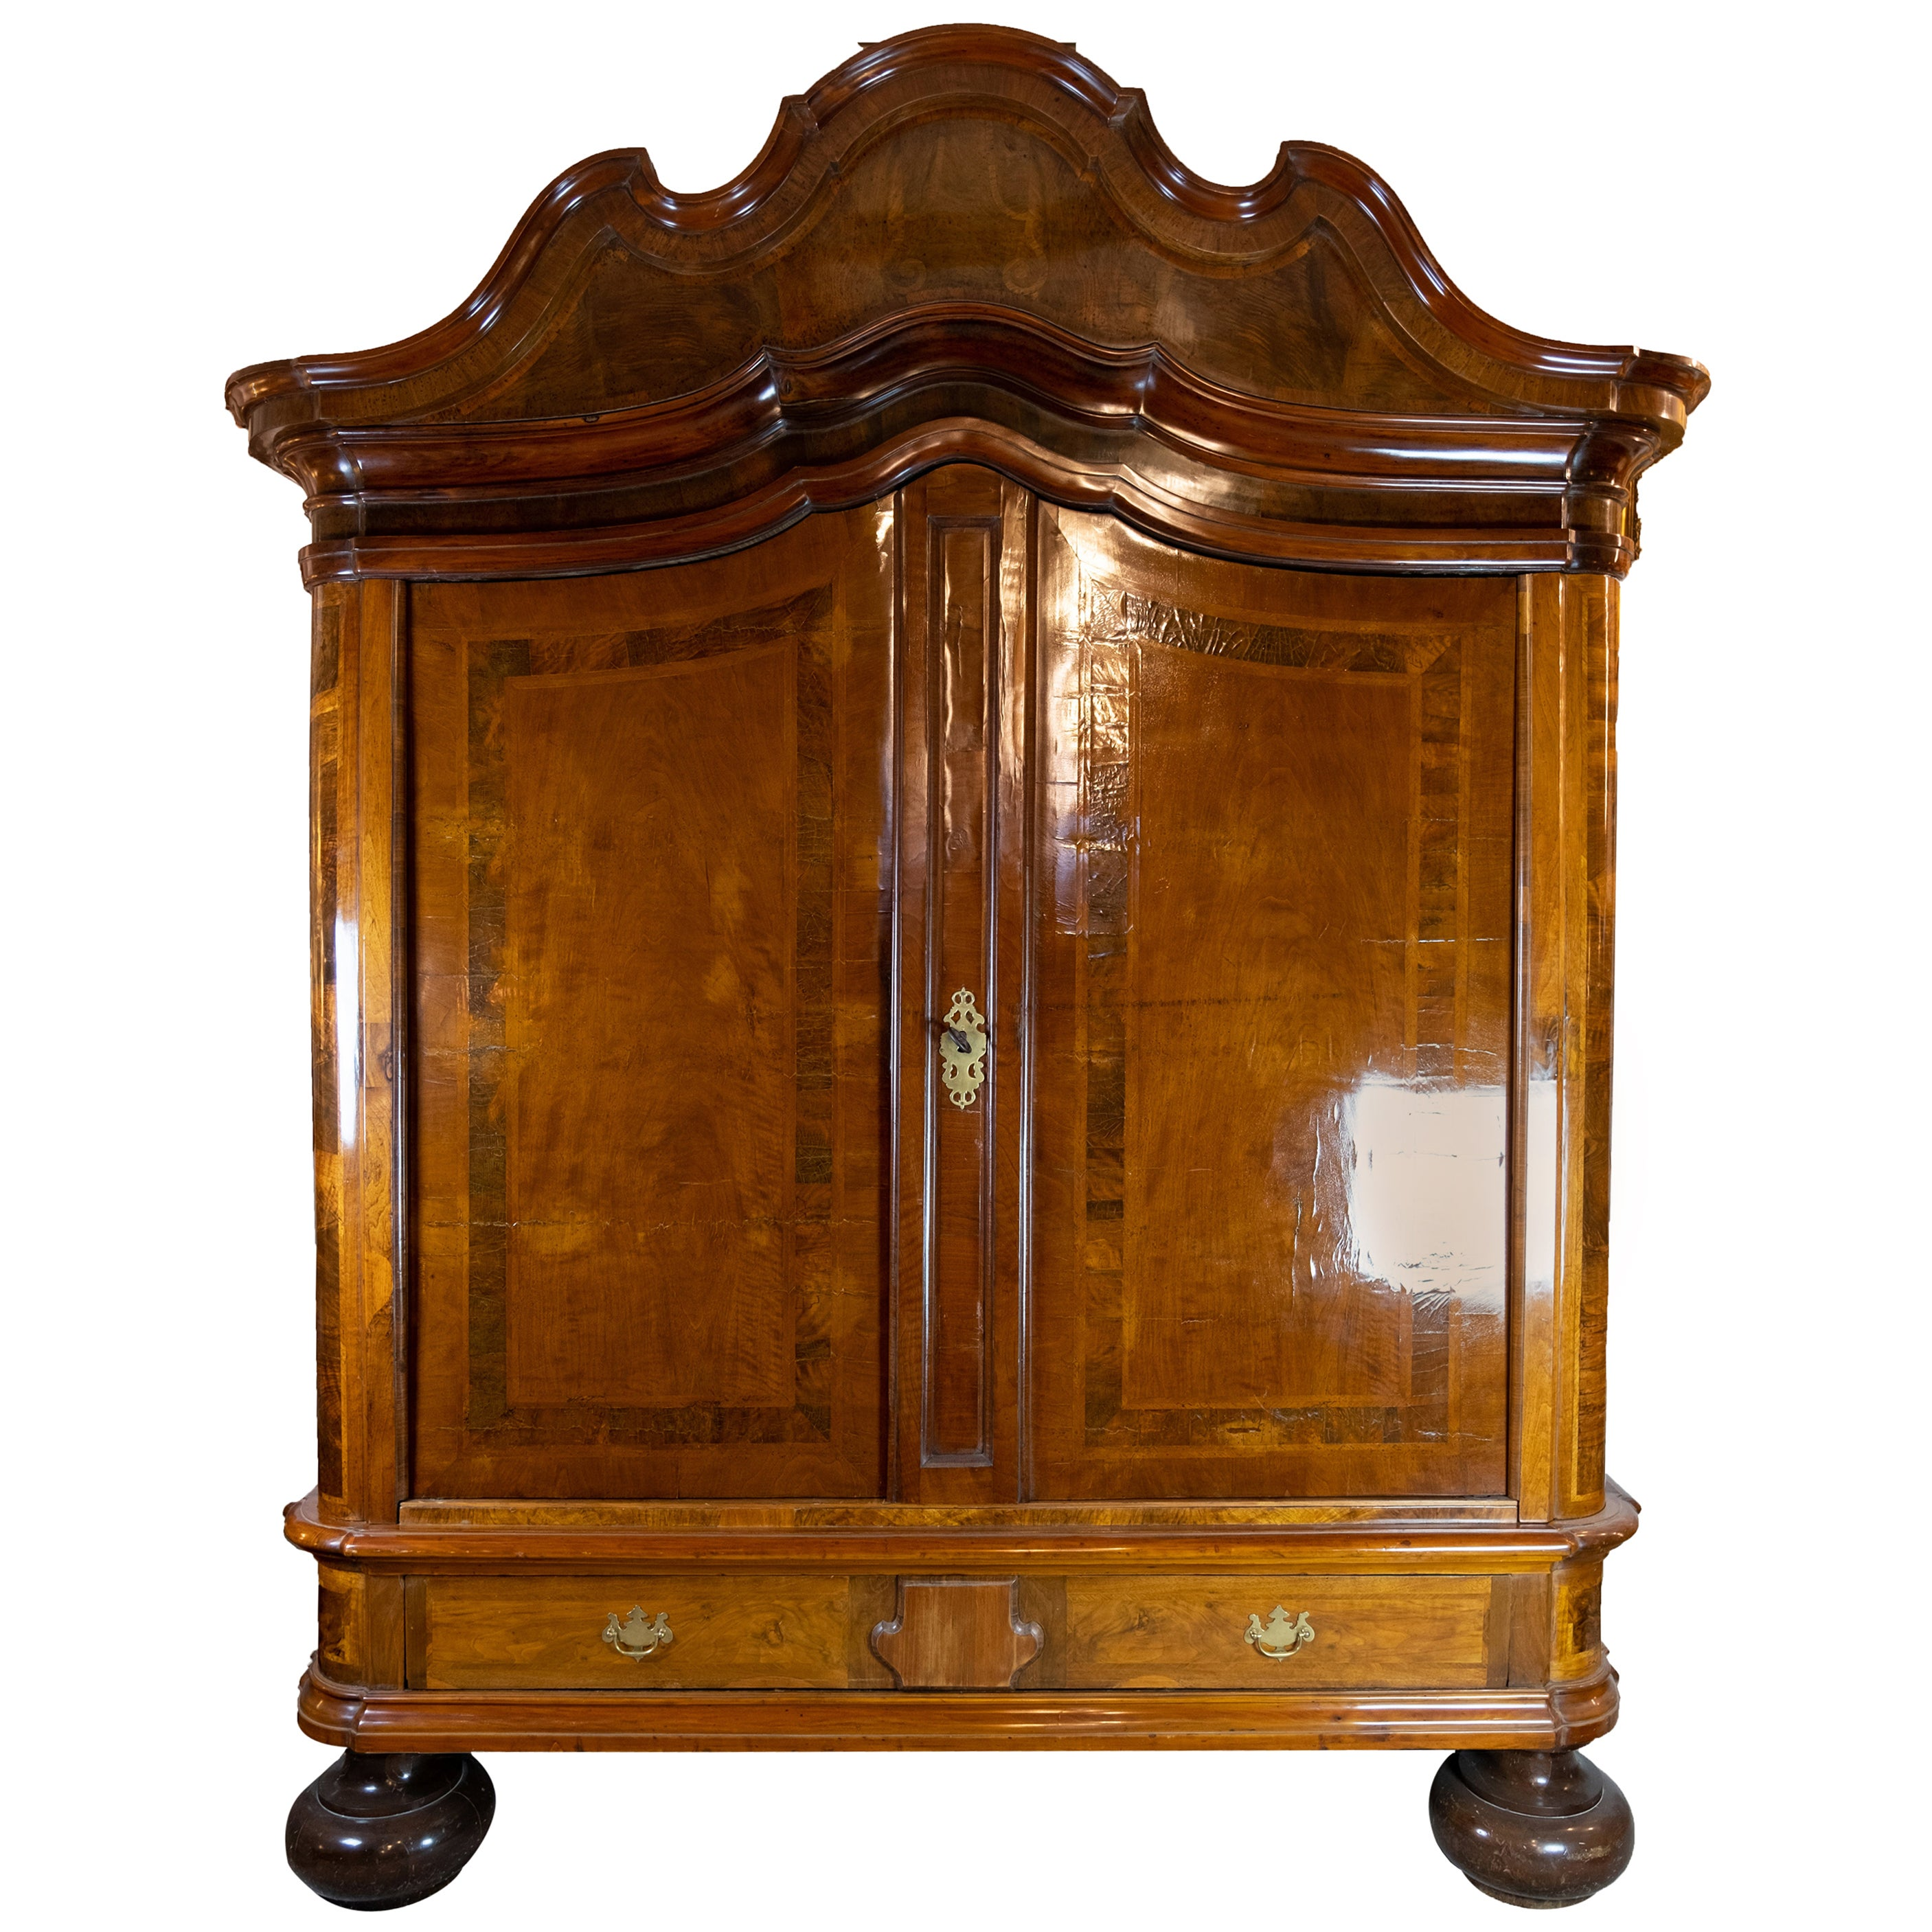 Northern German Baroque Cabinet of Walnut and Oak from circa 1730